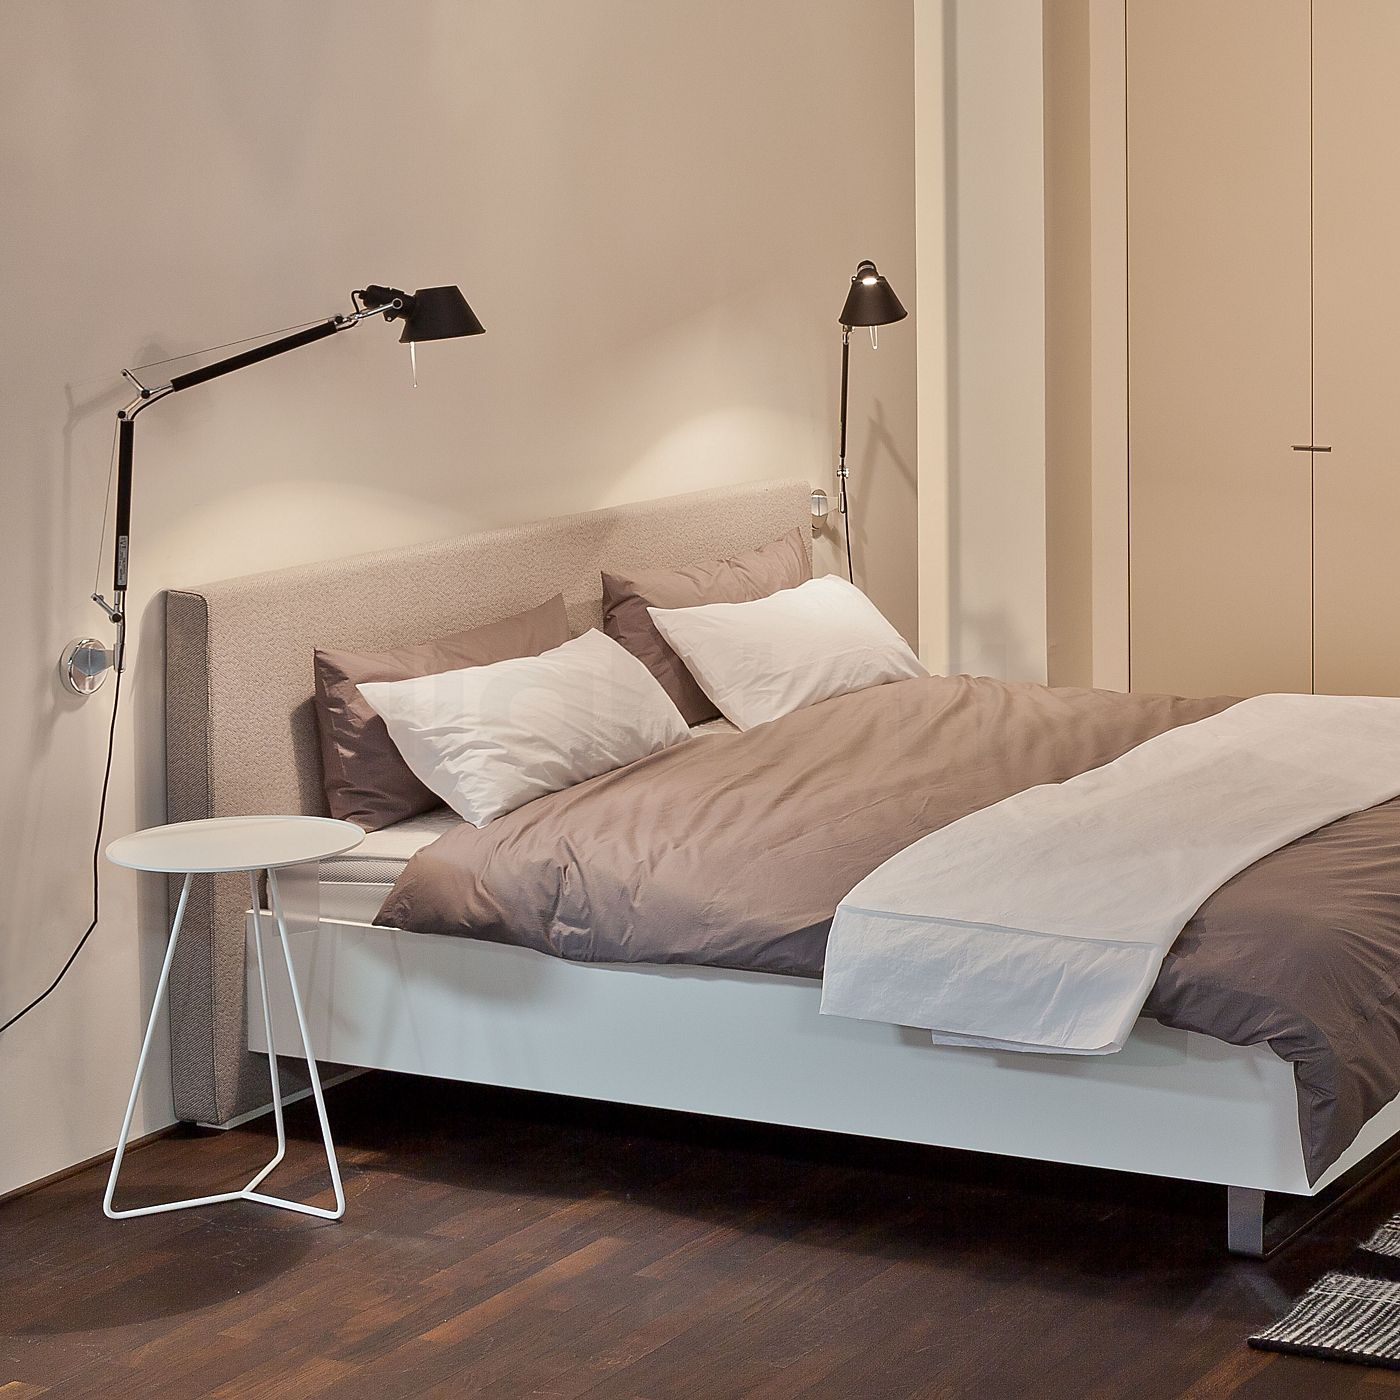 Tolomeo Wall Lamp Bedroom : Artemide Tolomeo Parete beedroom inspiration - sovev?relser Pinterest Lights, Interiors ...